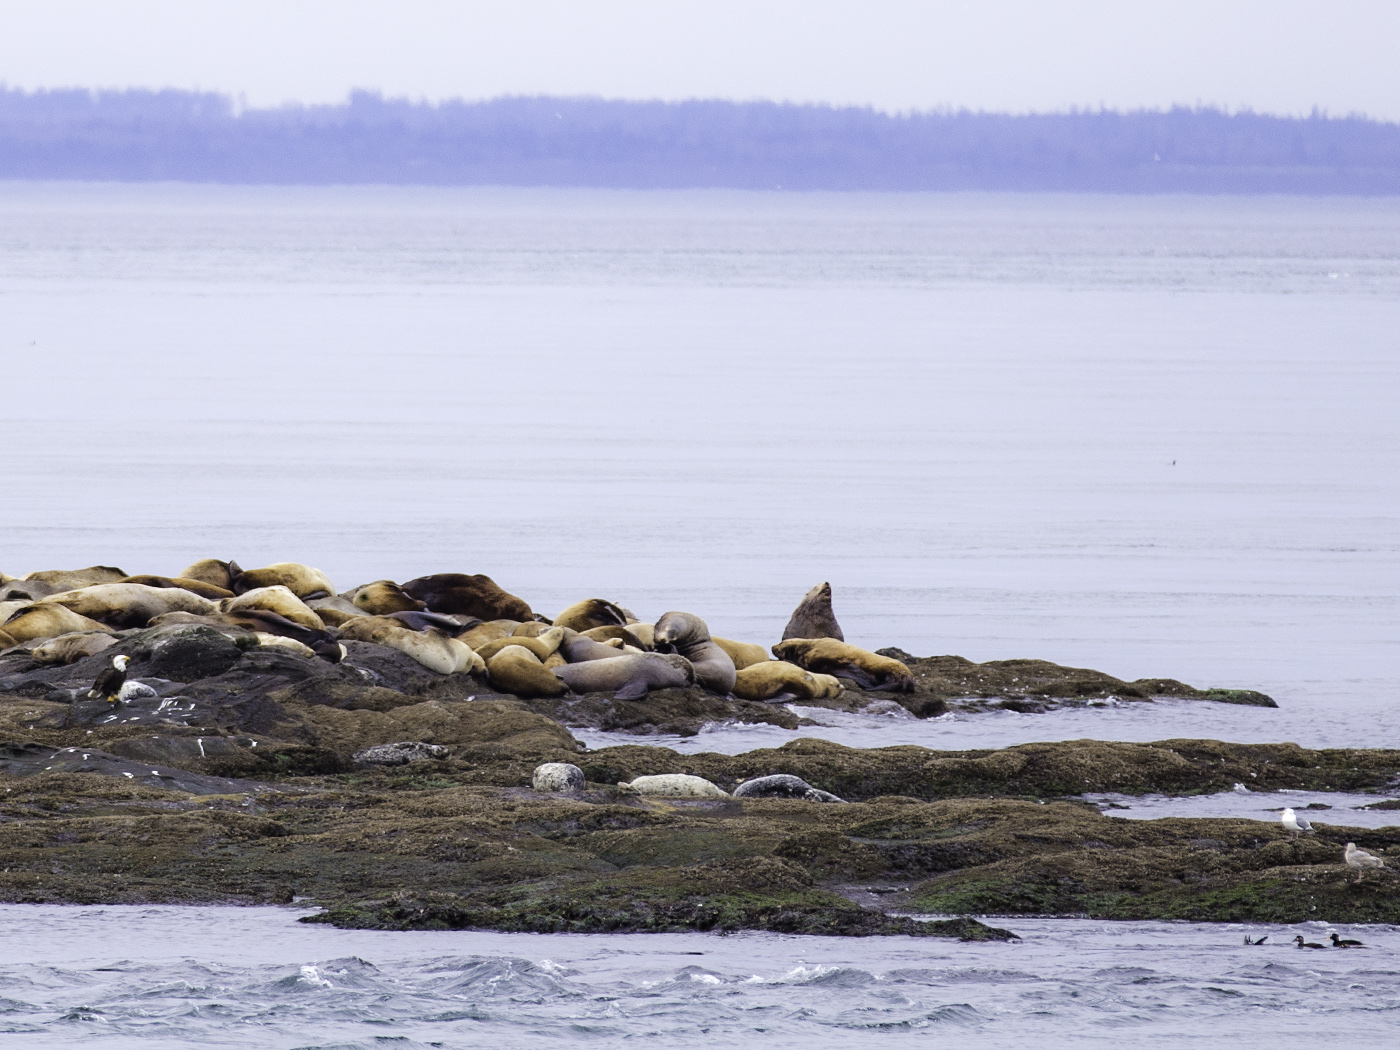 Steller sea lions, Harbour seals, Bald eagle, gulls and ducks on Boiling Reef. Photo © Andrée Fredette